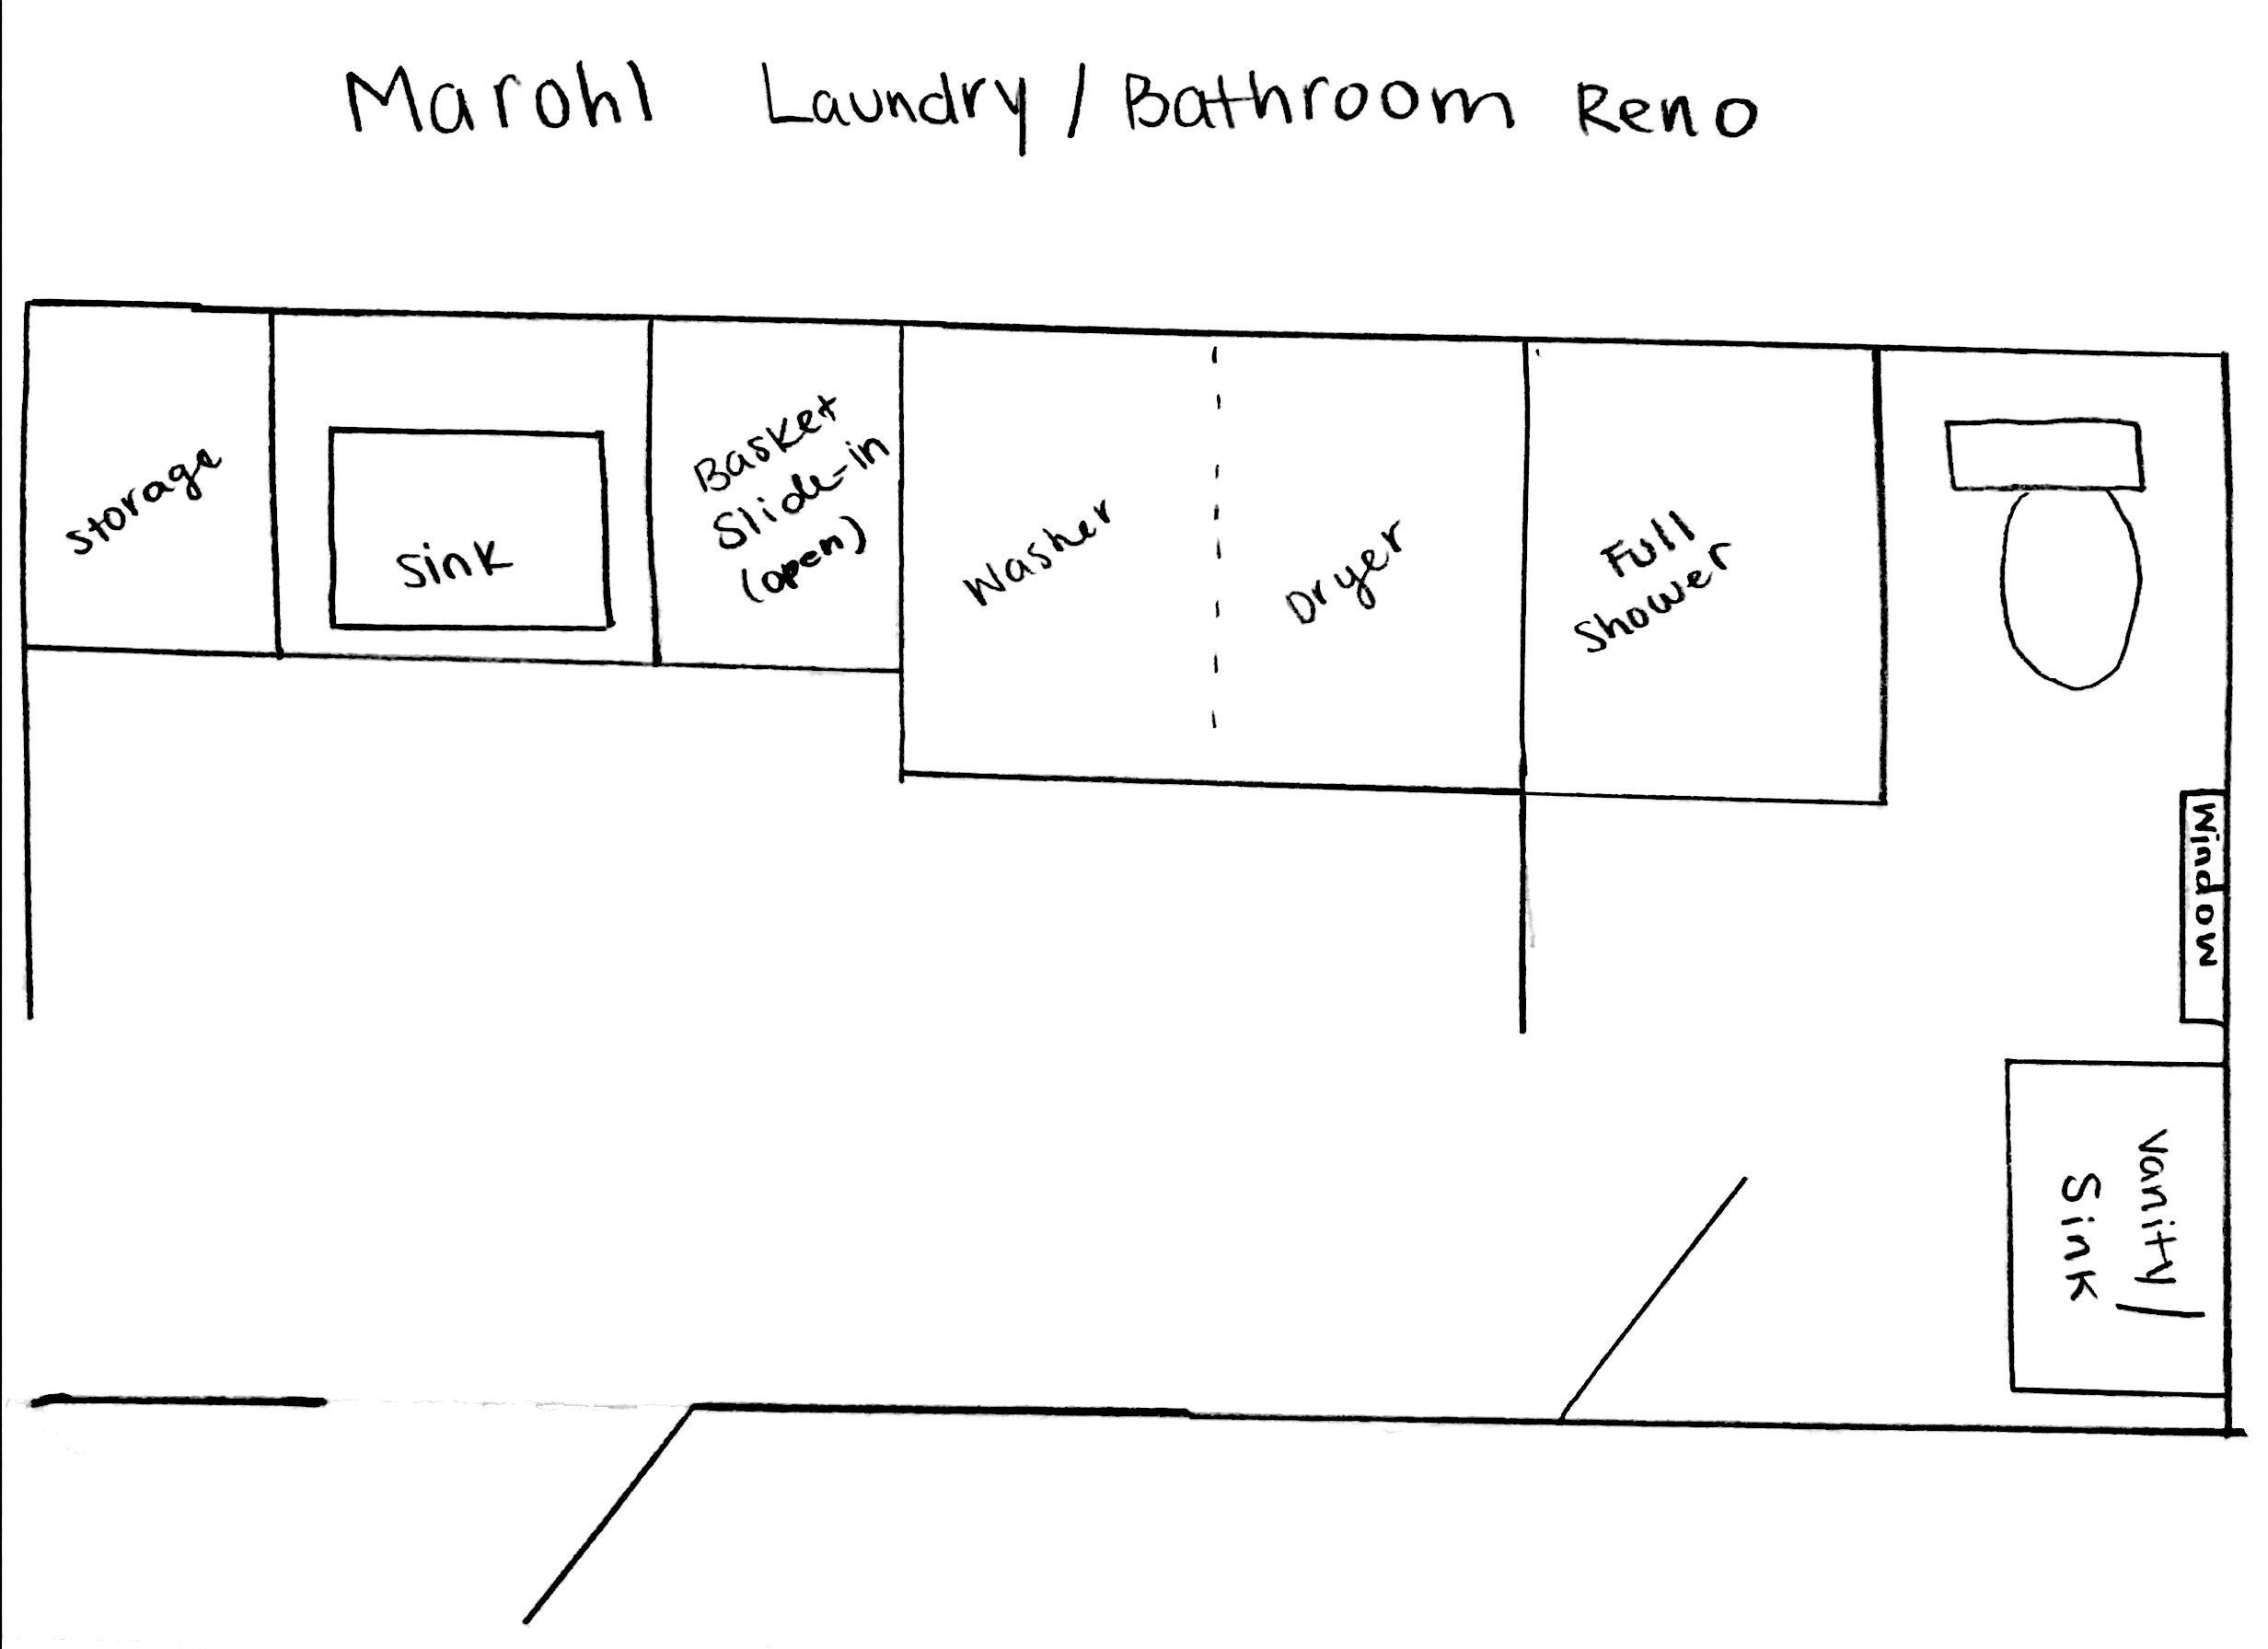 Laundry room layout home layouts floor plans carpets plus for Laundry room floor plan example